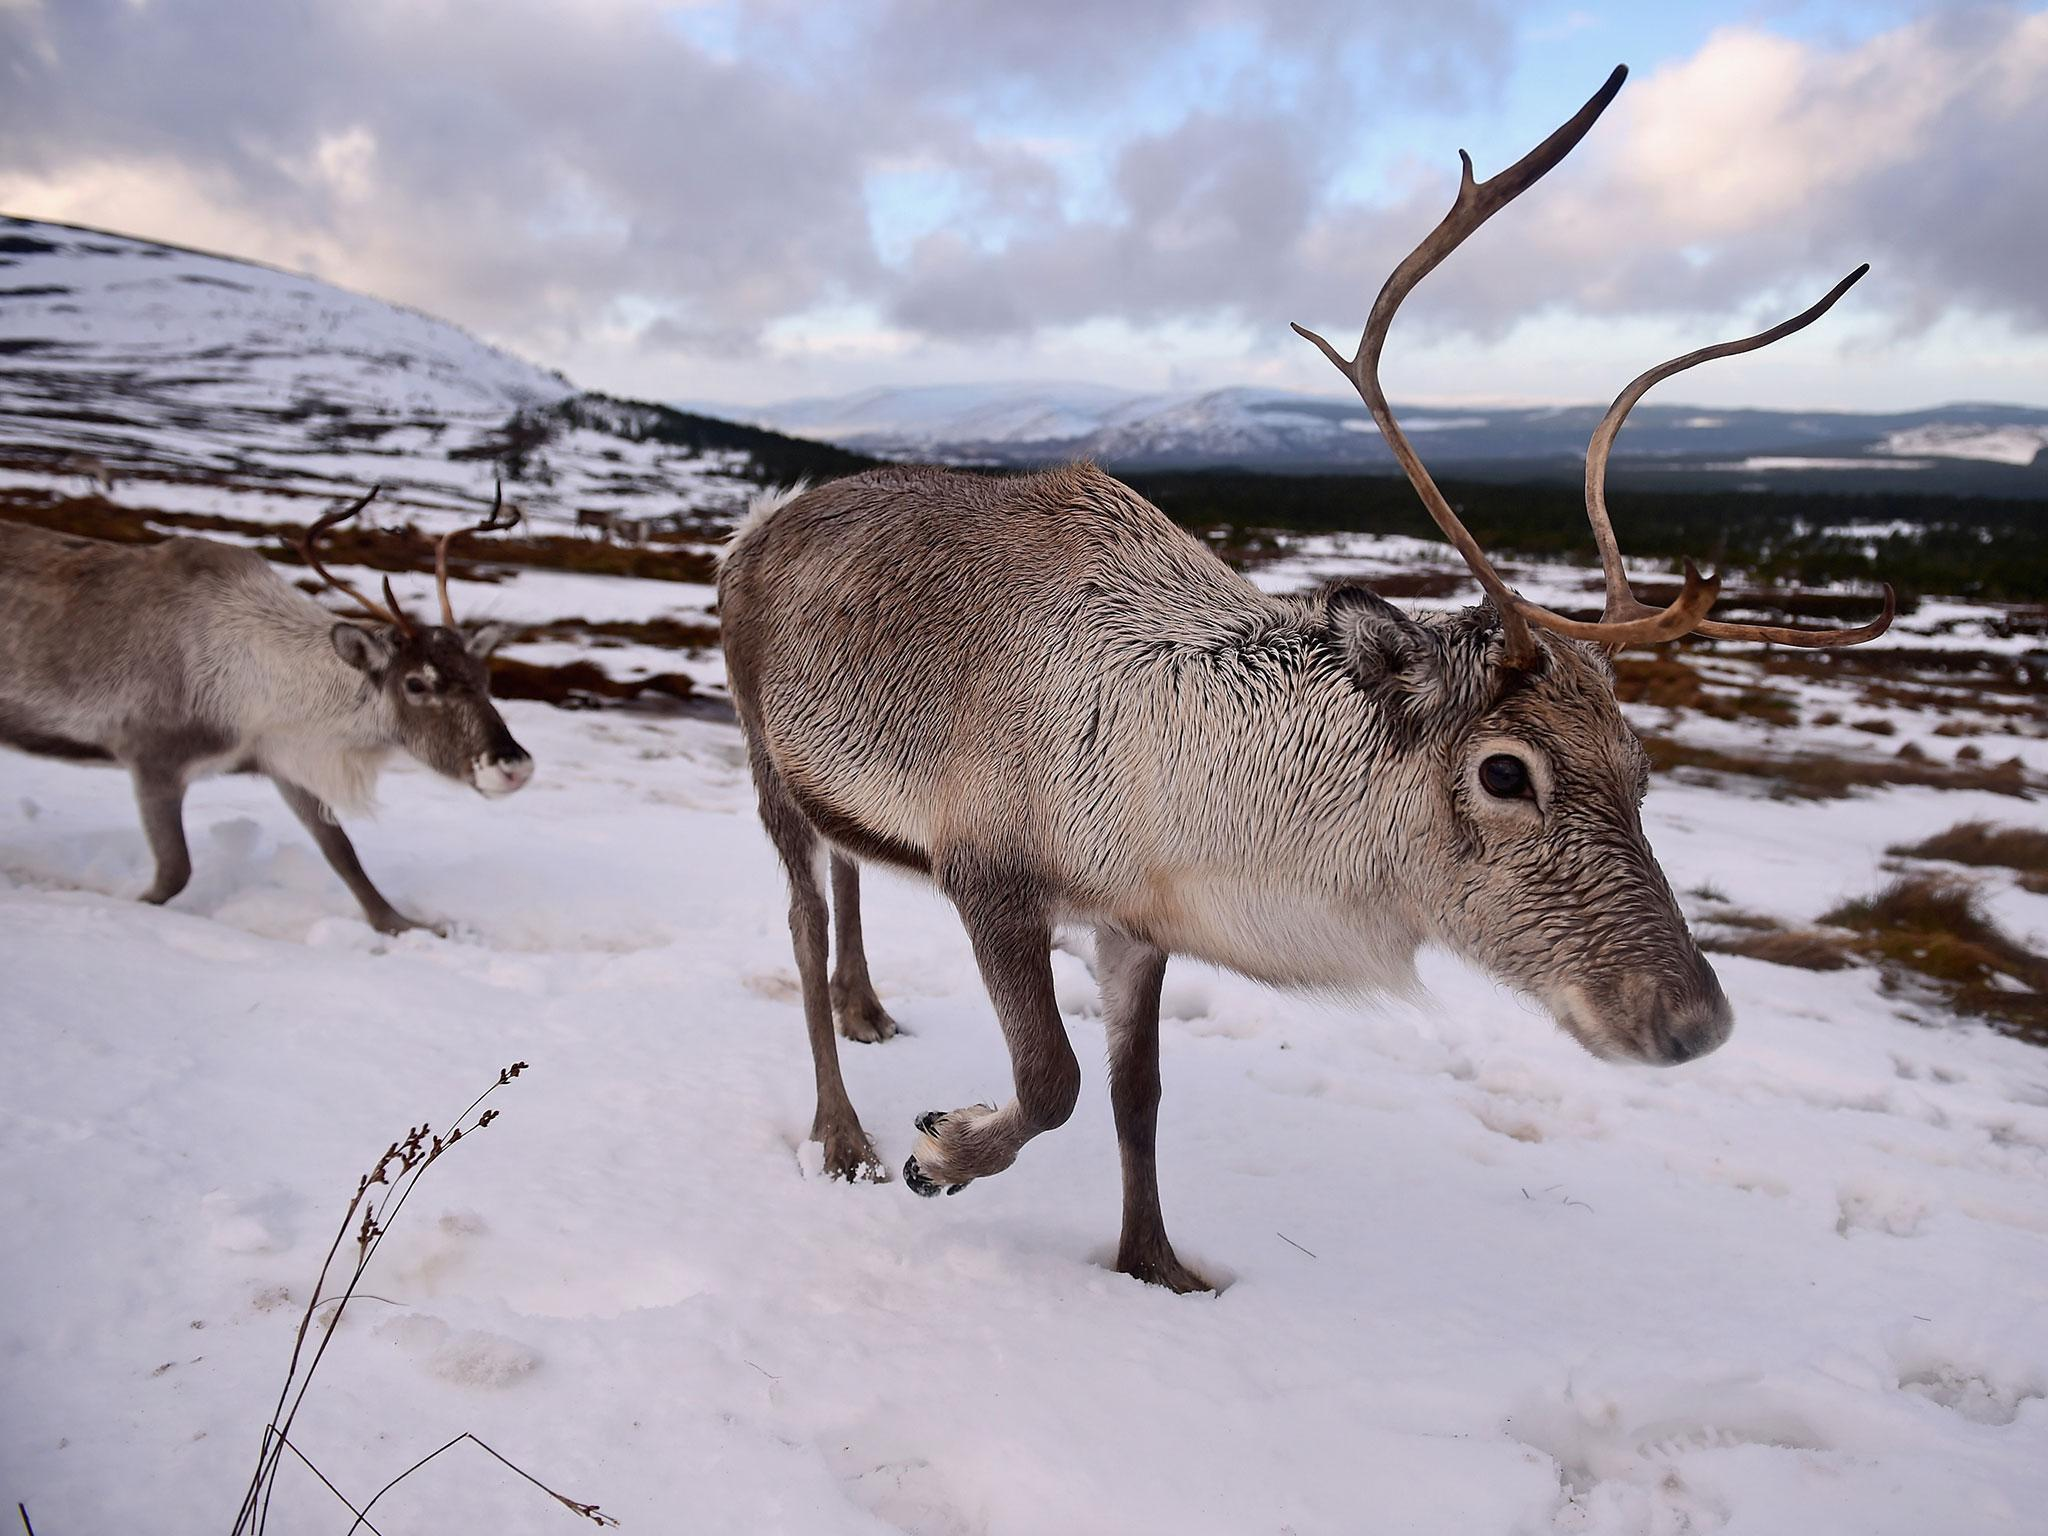 norway plans mass reindeer cull to prevent spread of wasting